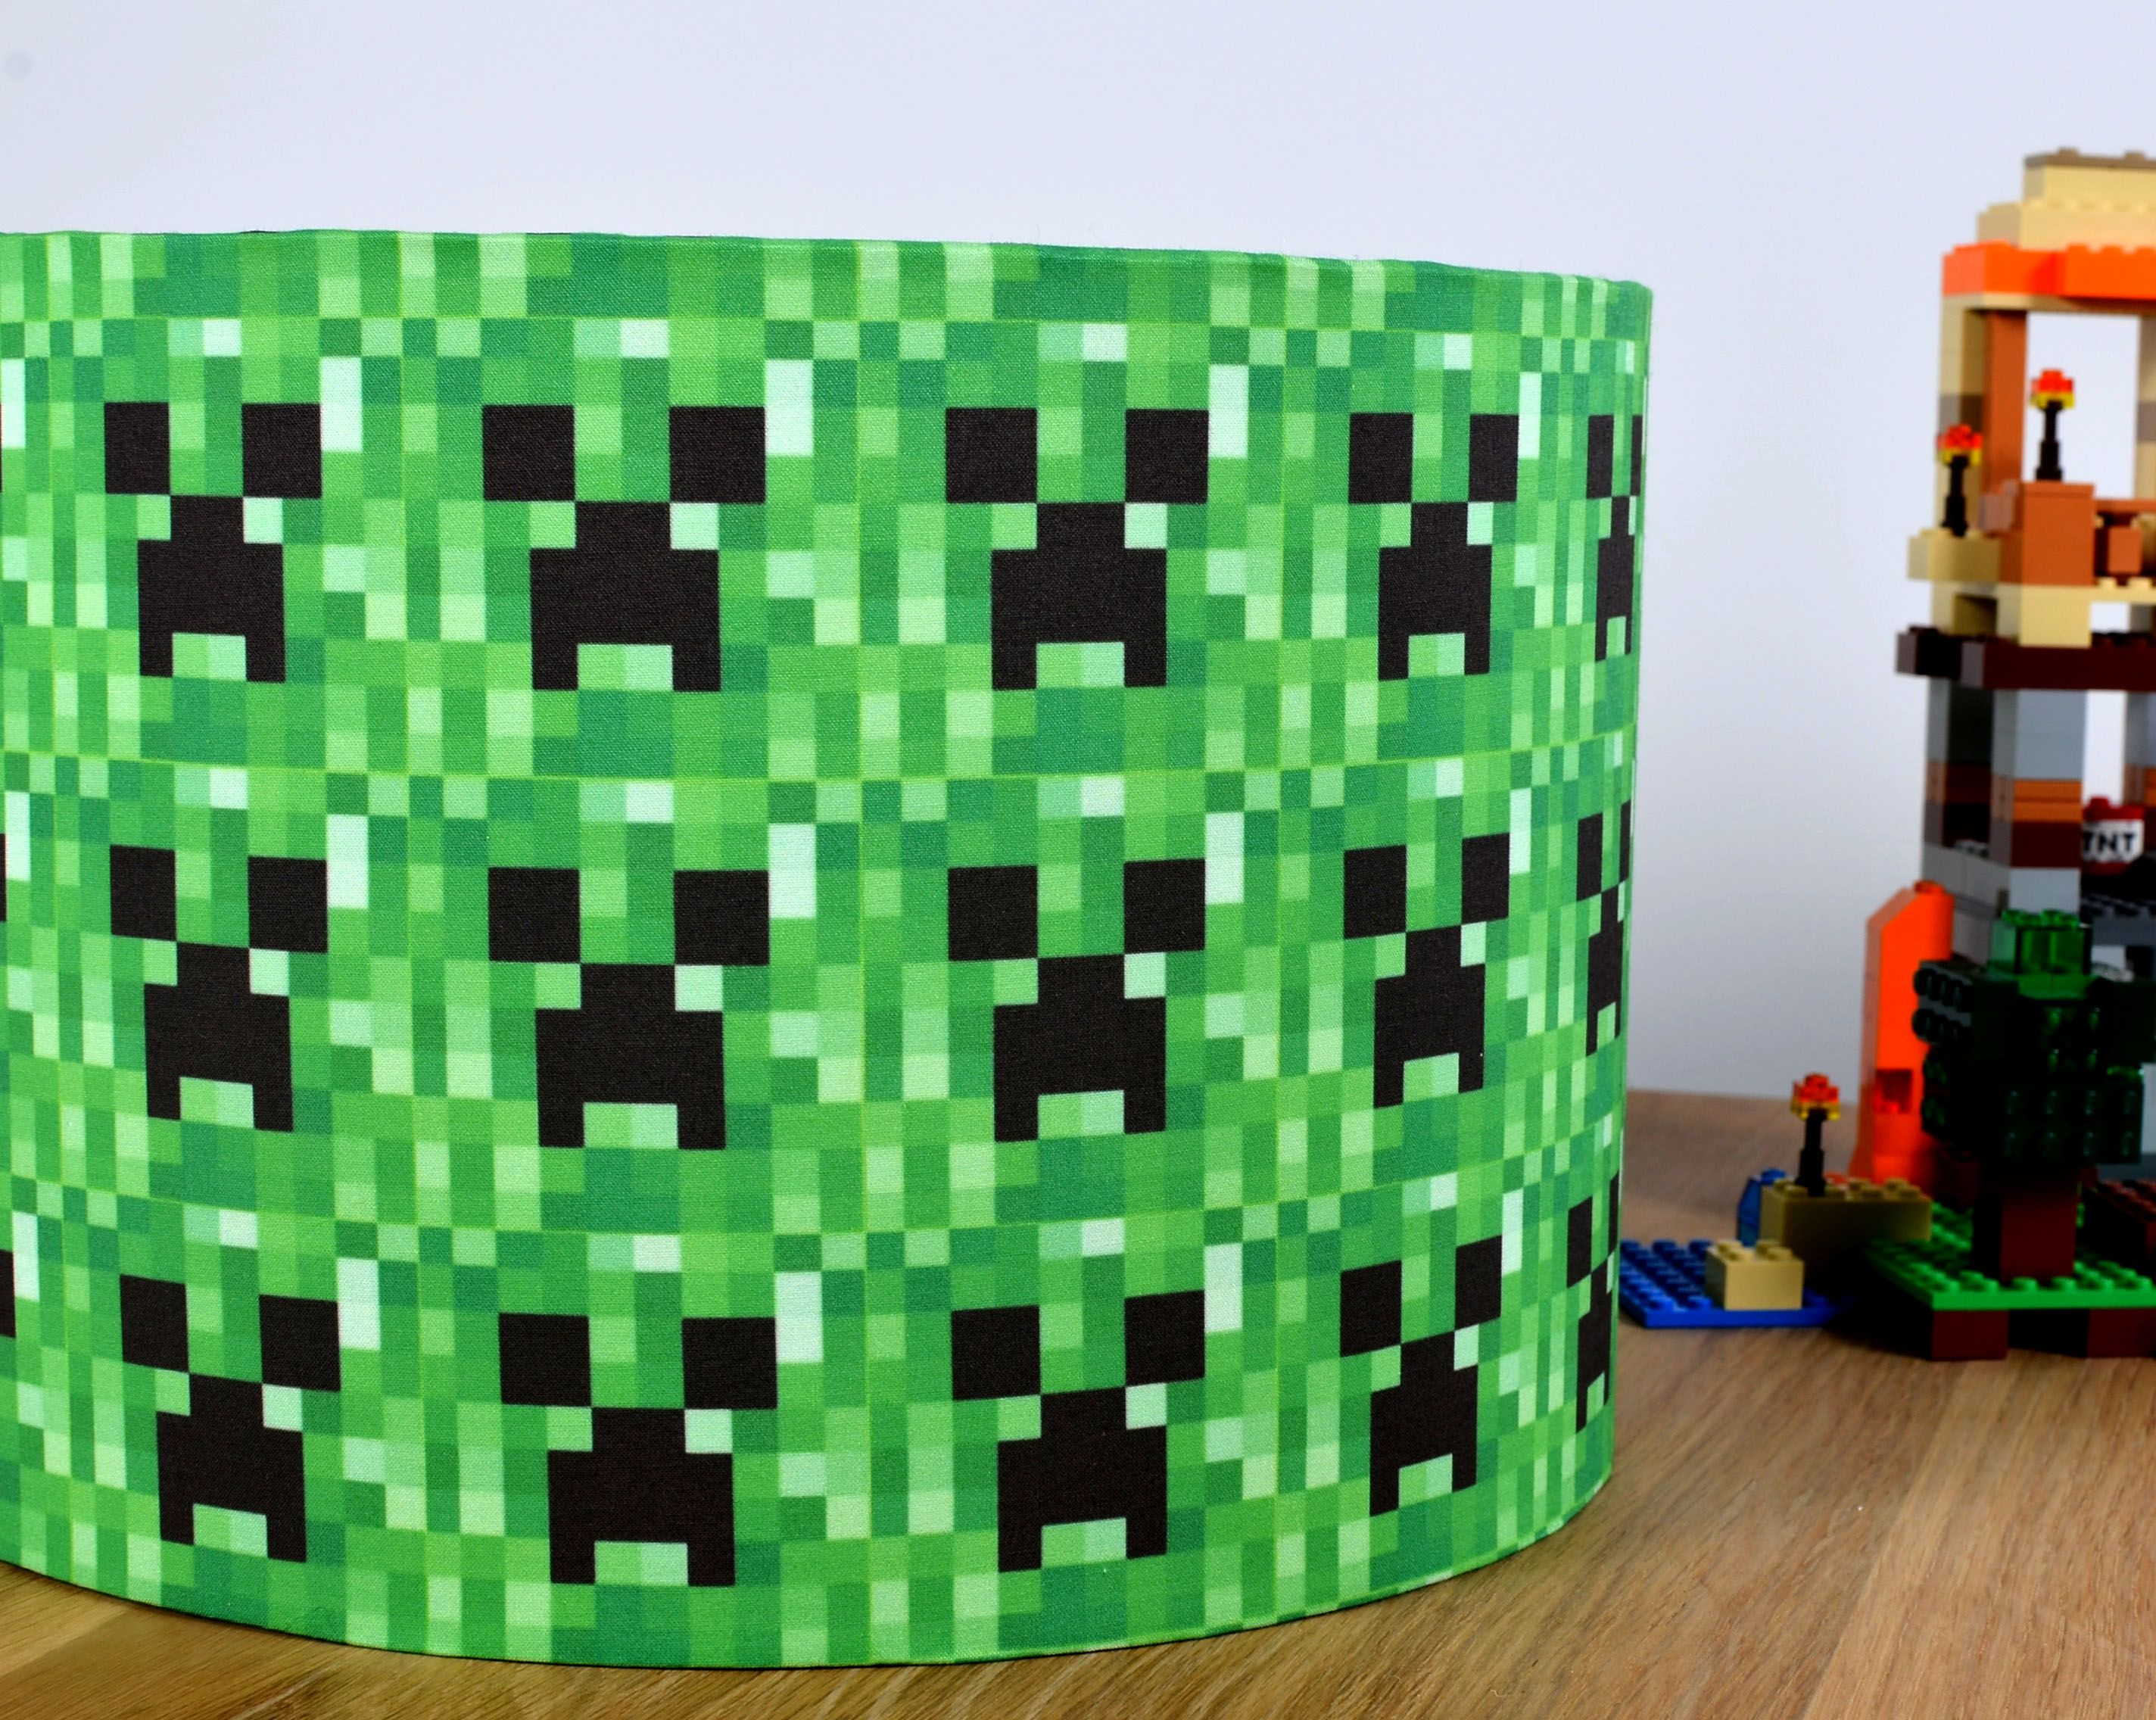 A minecraft lampshade because my daughter is obsessed sigh a minecraft lampshade because my daughter is obsessed sigh aloadofball Gallery